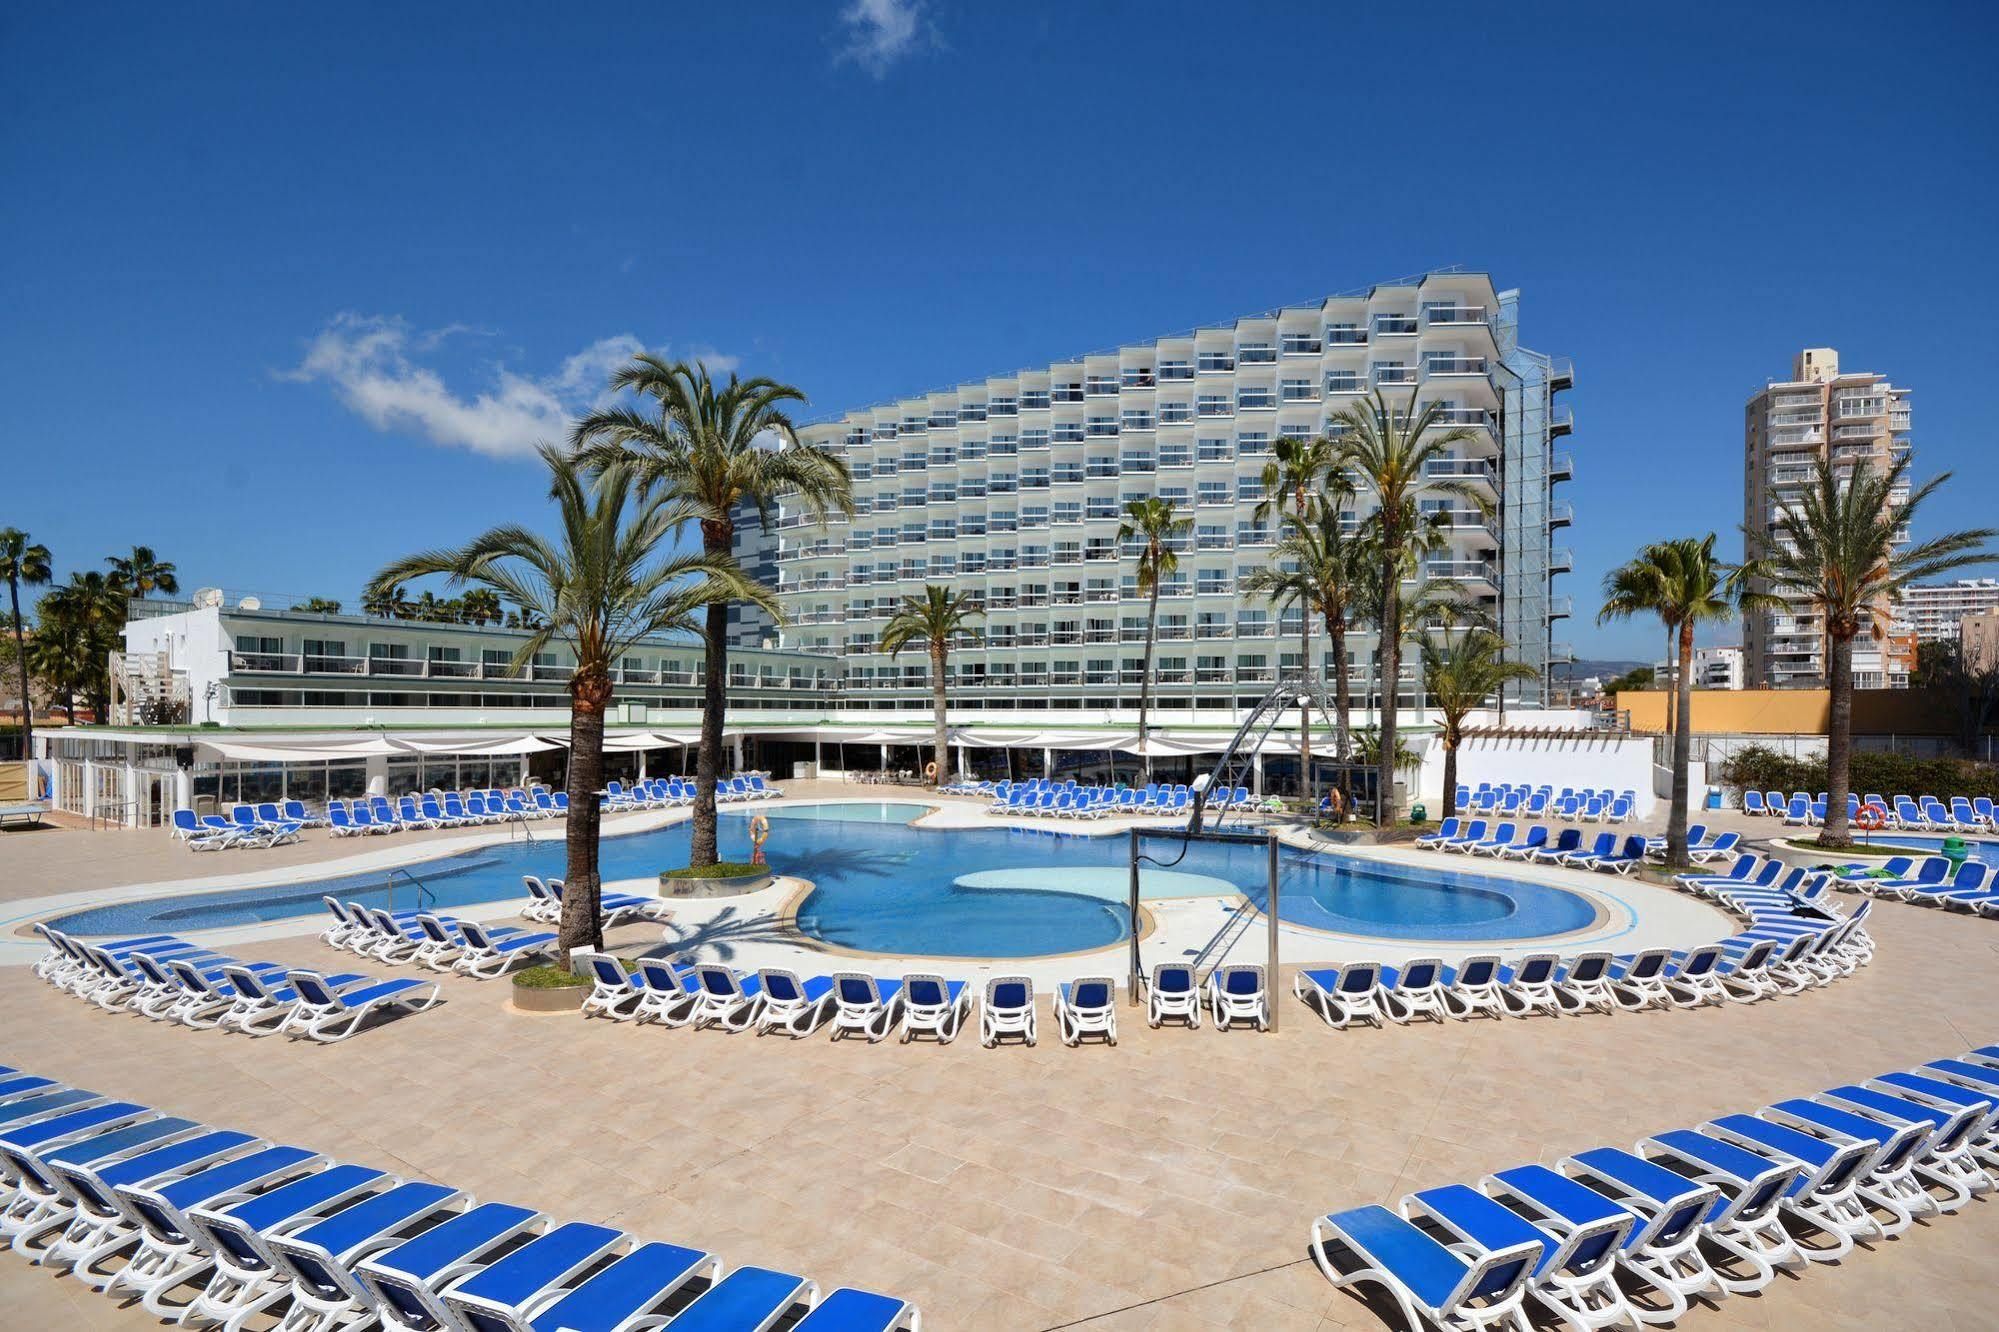 Terrazza Nettuno Jesolo Hotel Samos Adults Only Magaluf